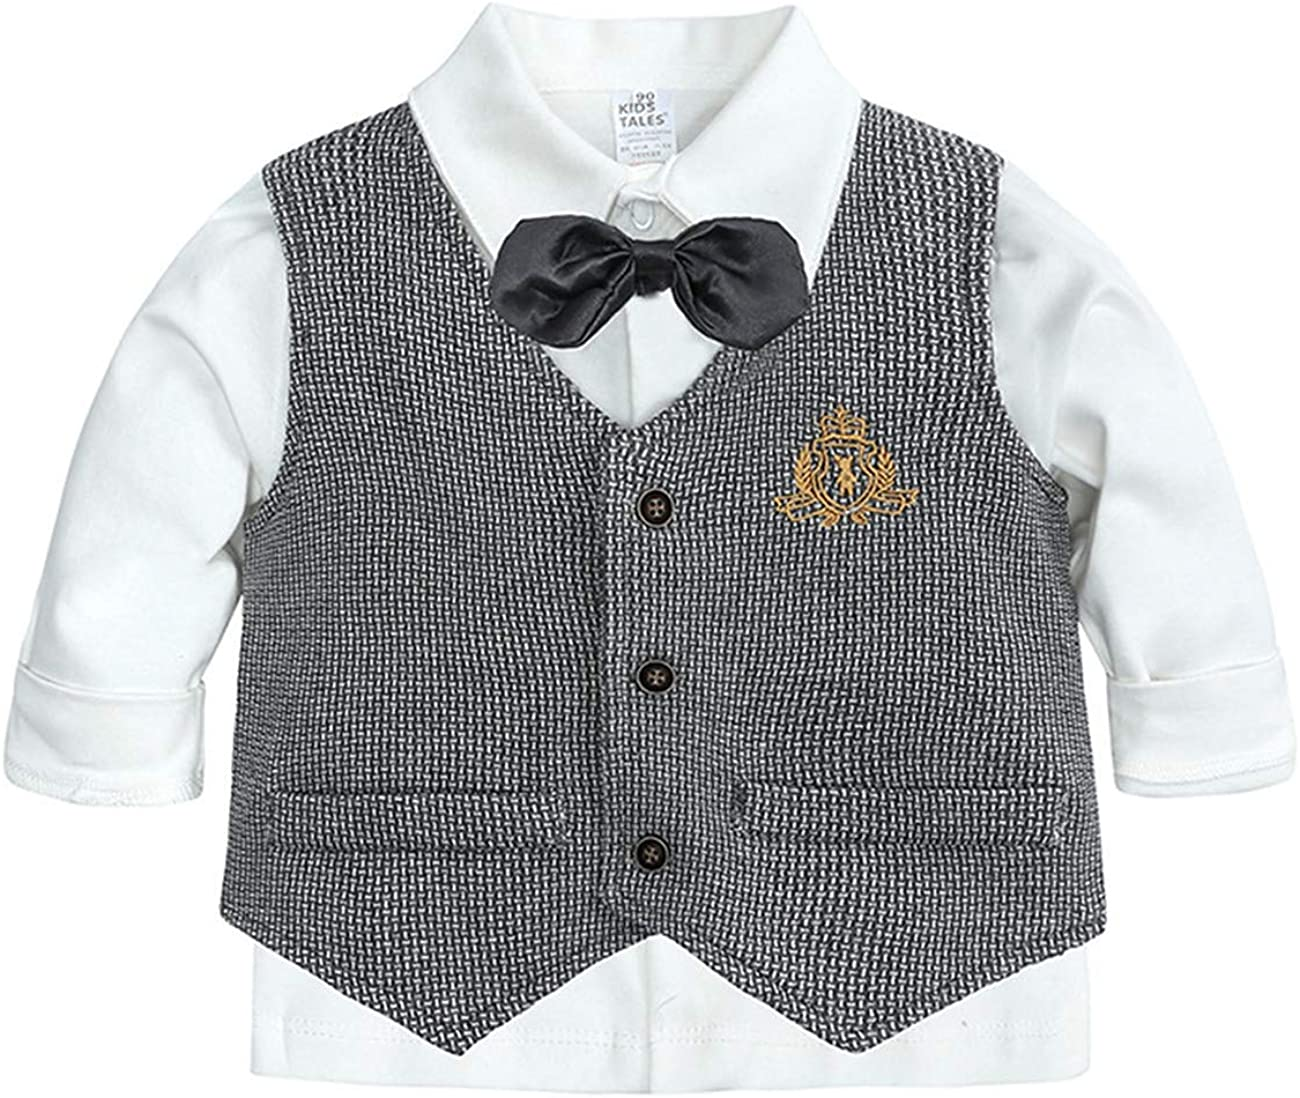 WOOKIT Baby Boys Baptism Christening Outfits Toddler Gentleman Suit Boys Vest+Shirt+Pant Three-Piece Suit Romper Jumpsuit with Bow Tie Baby Wedding Suit